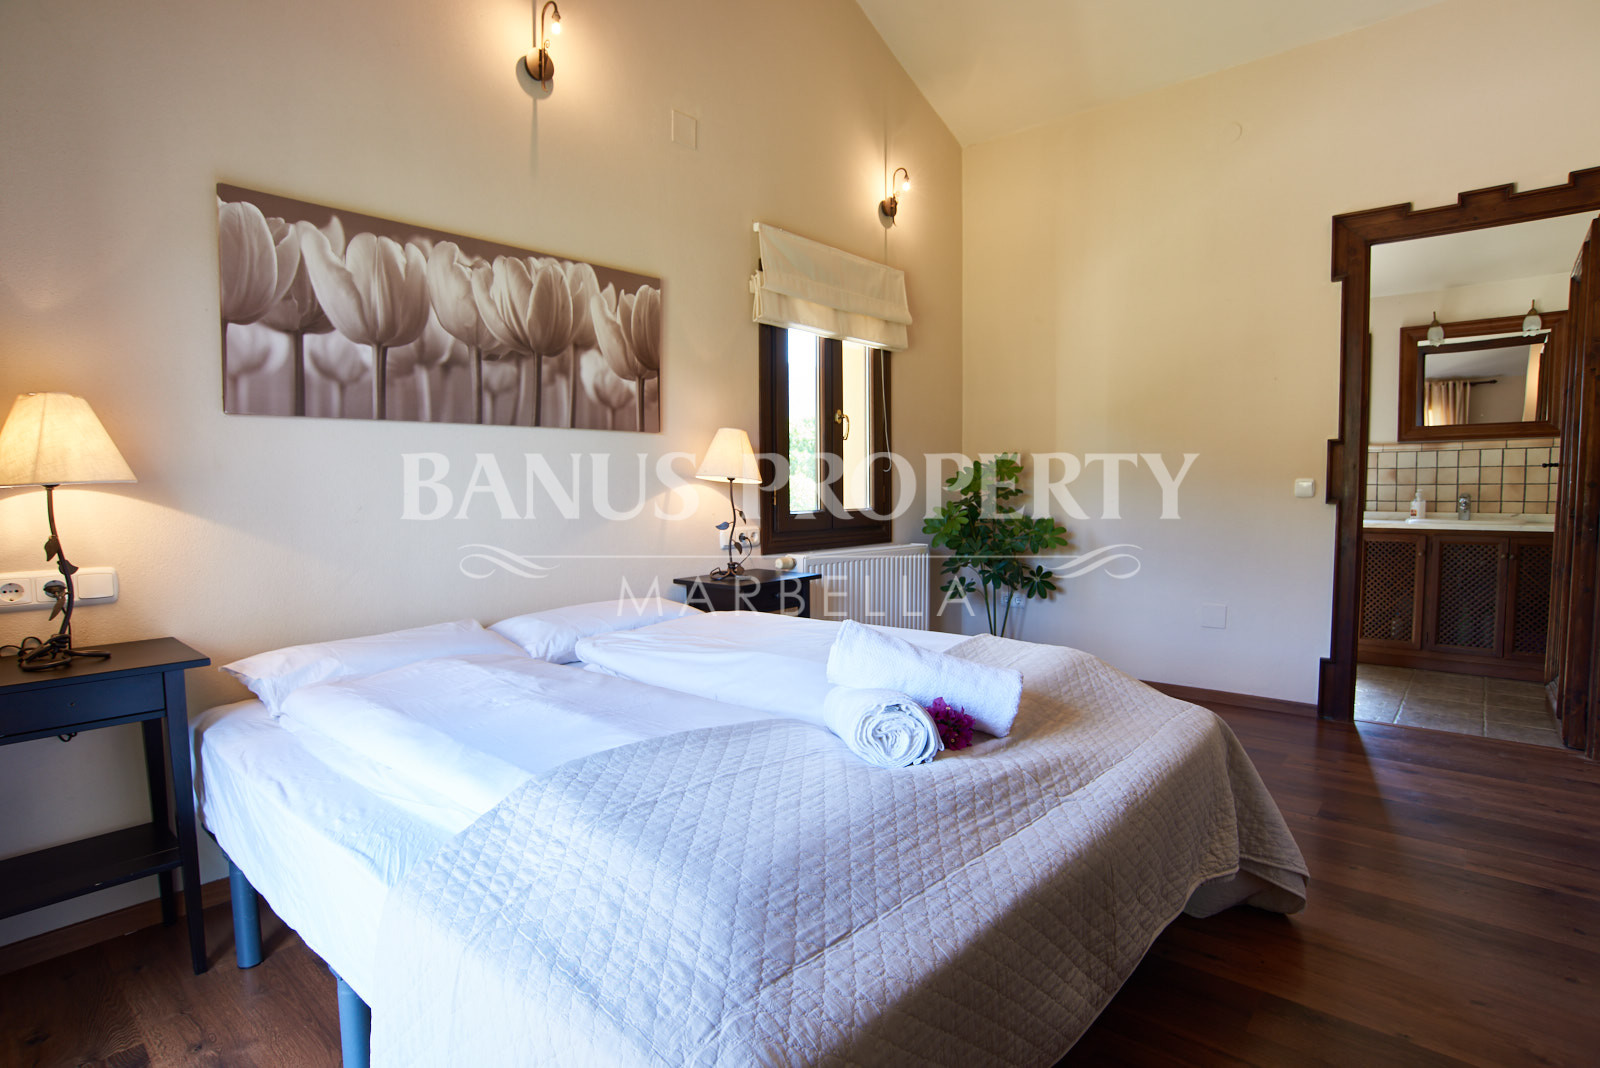 Andalusian style country house with equestrian setting 8-minutes from the coast of Casares